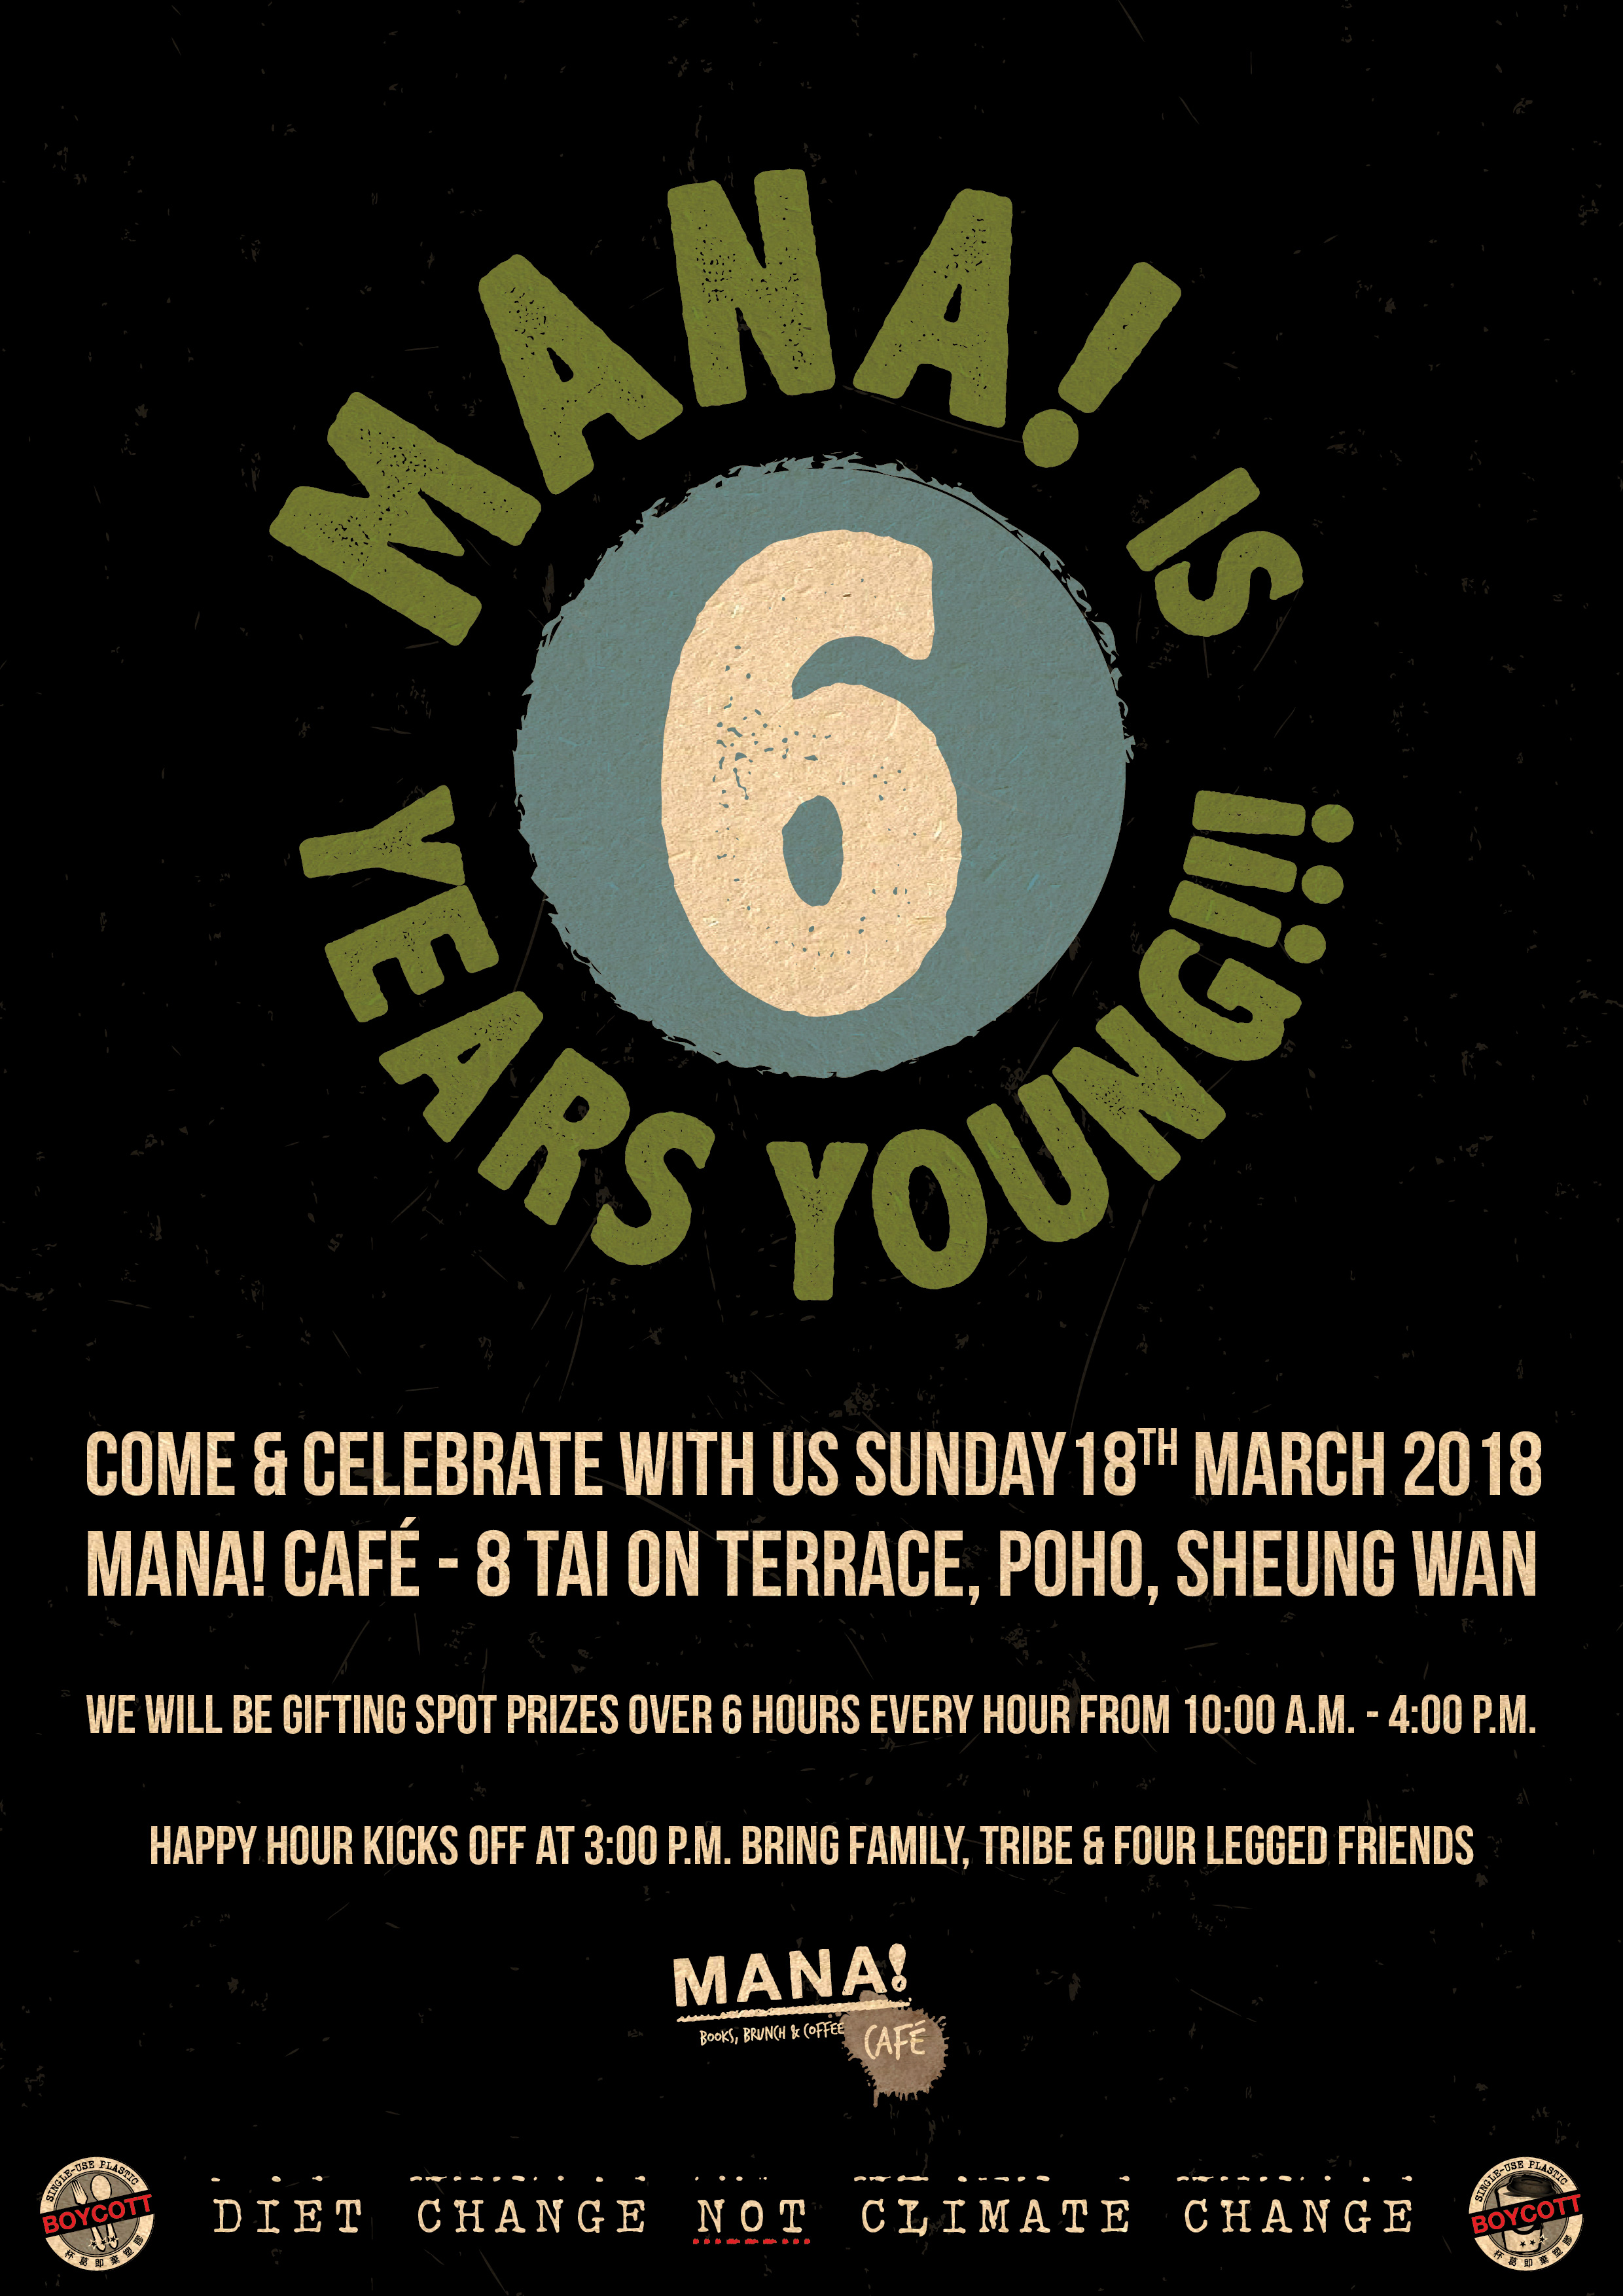 MANA! 6 Years Young - Poster 02A.jpg